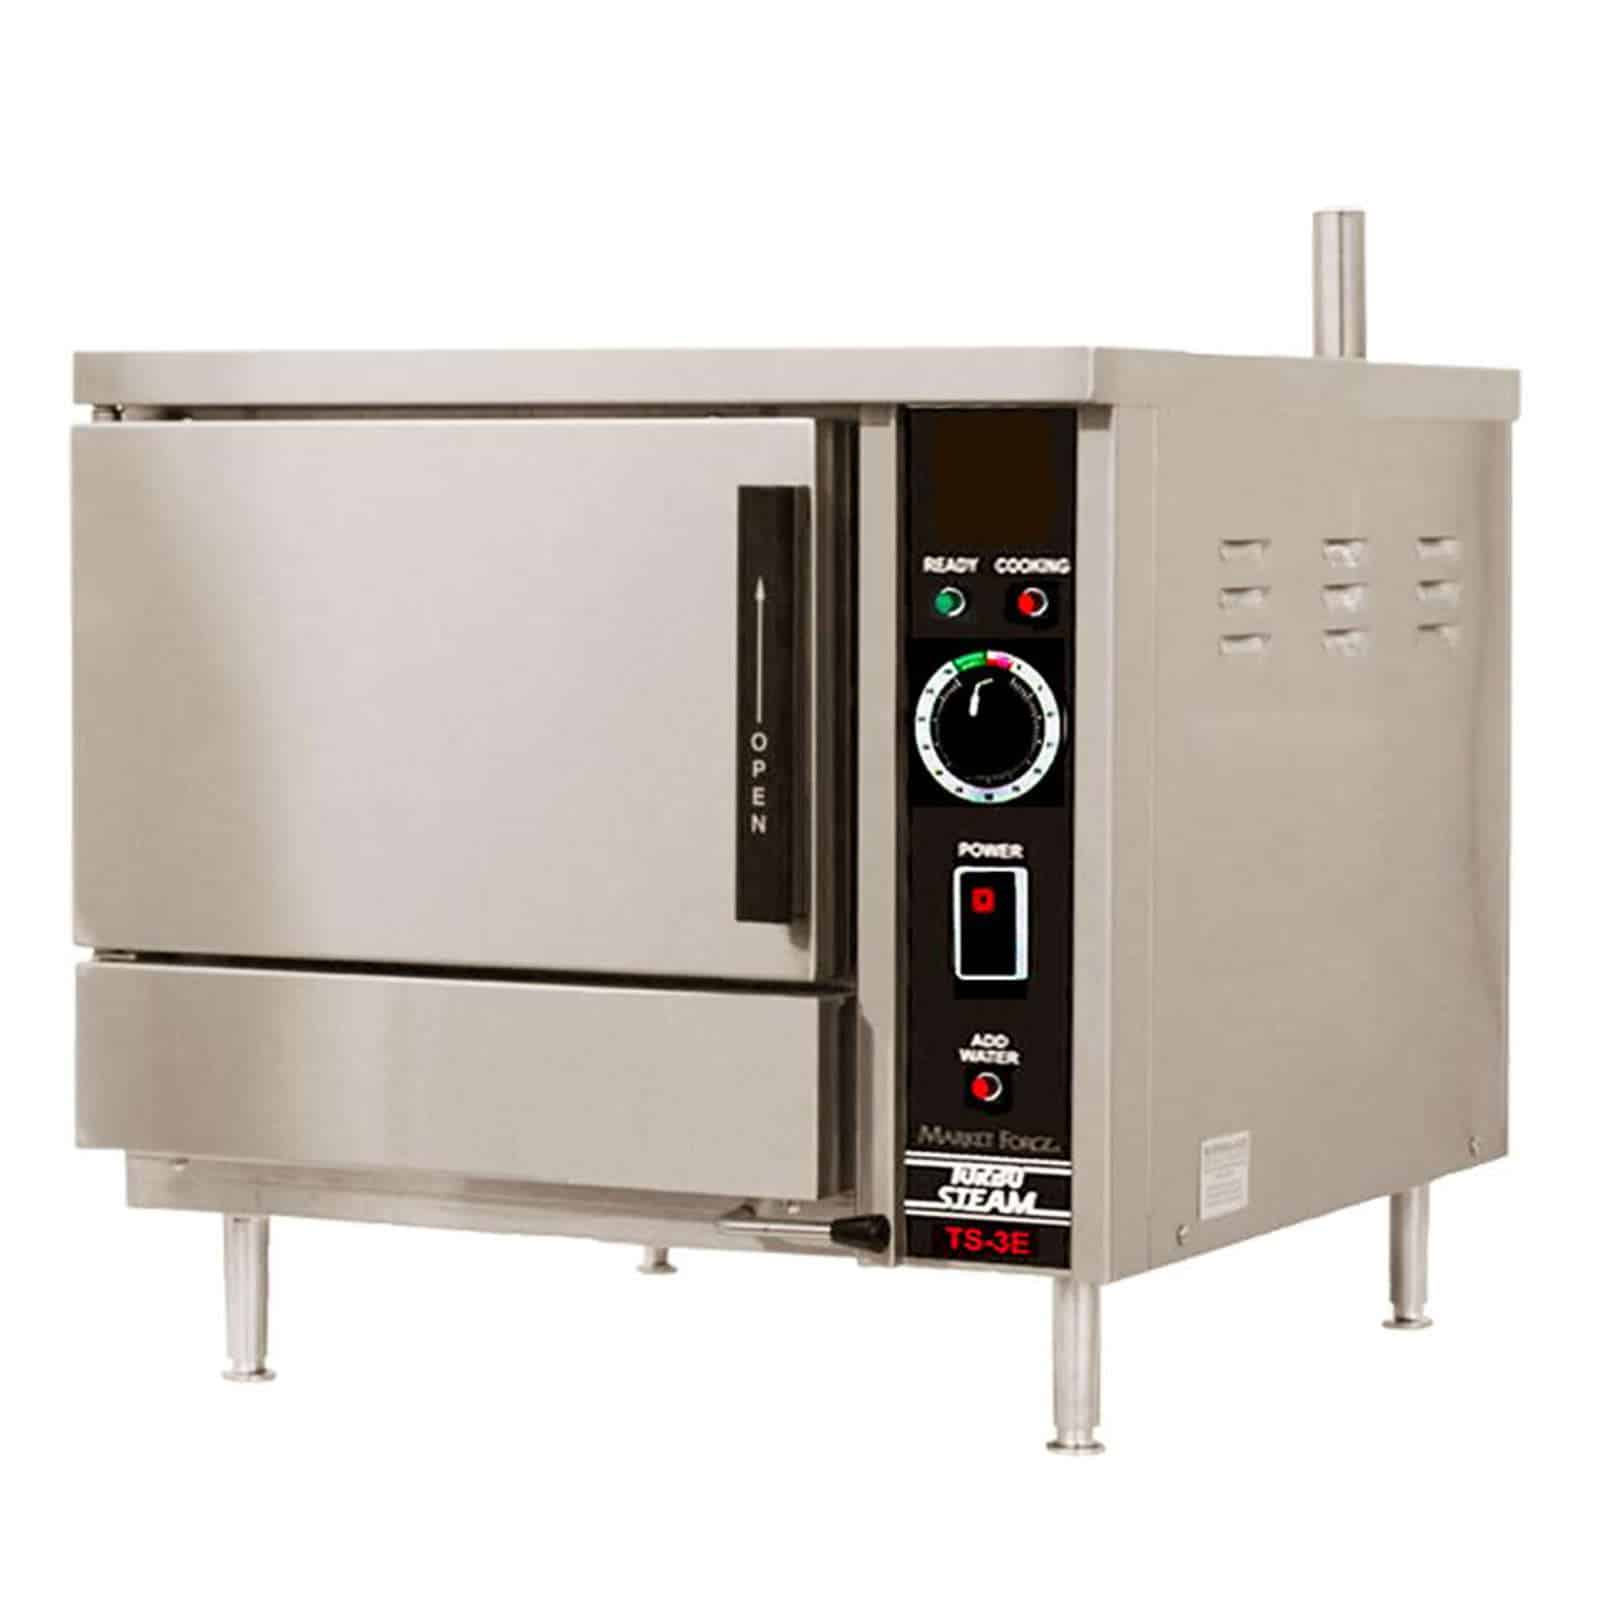 Market Forge Industries TS-5E Convection Steamer